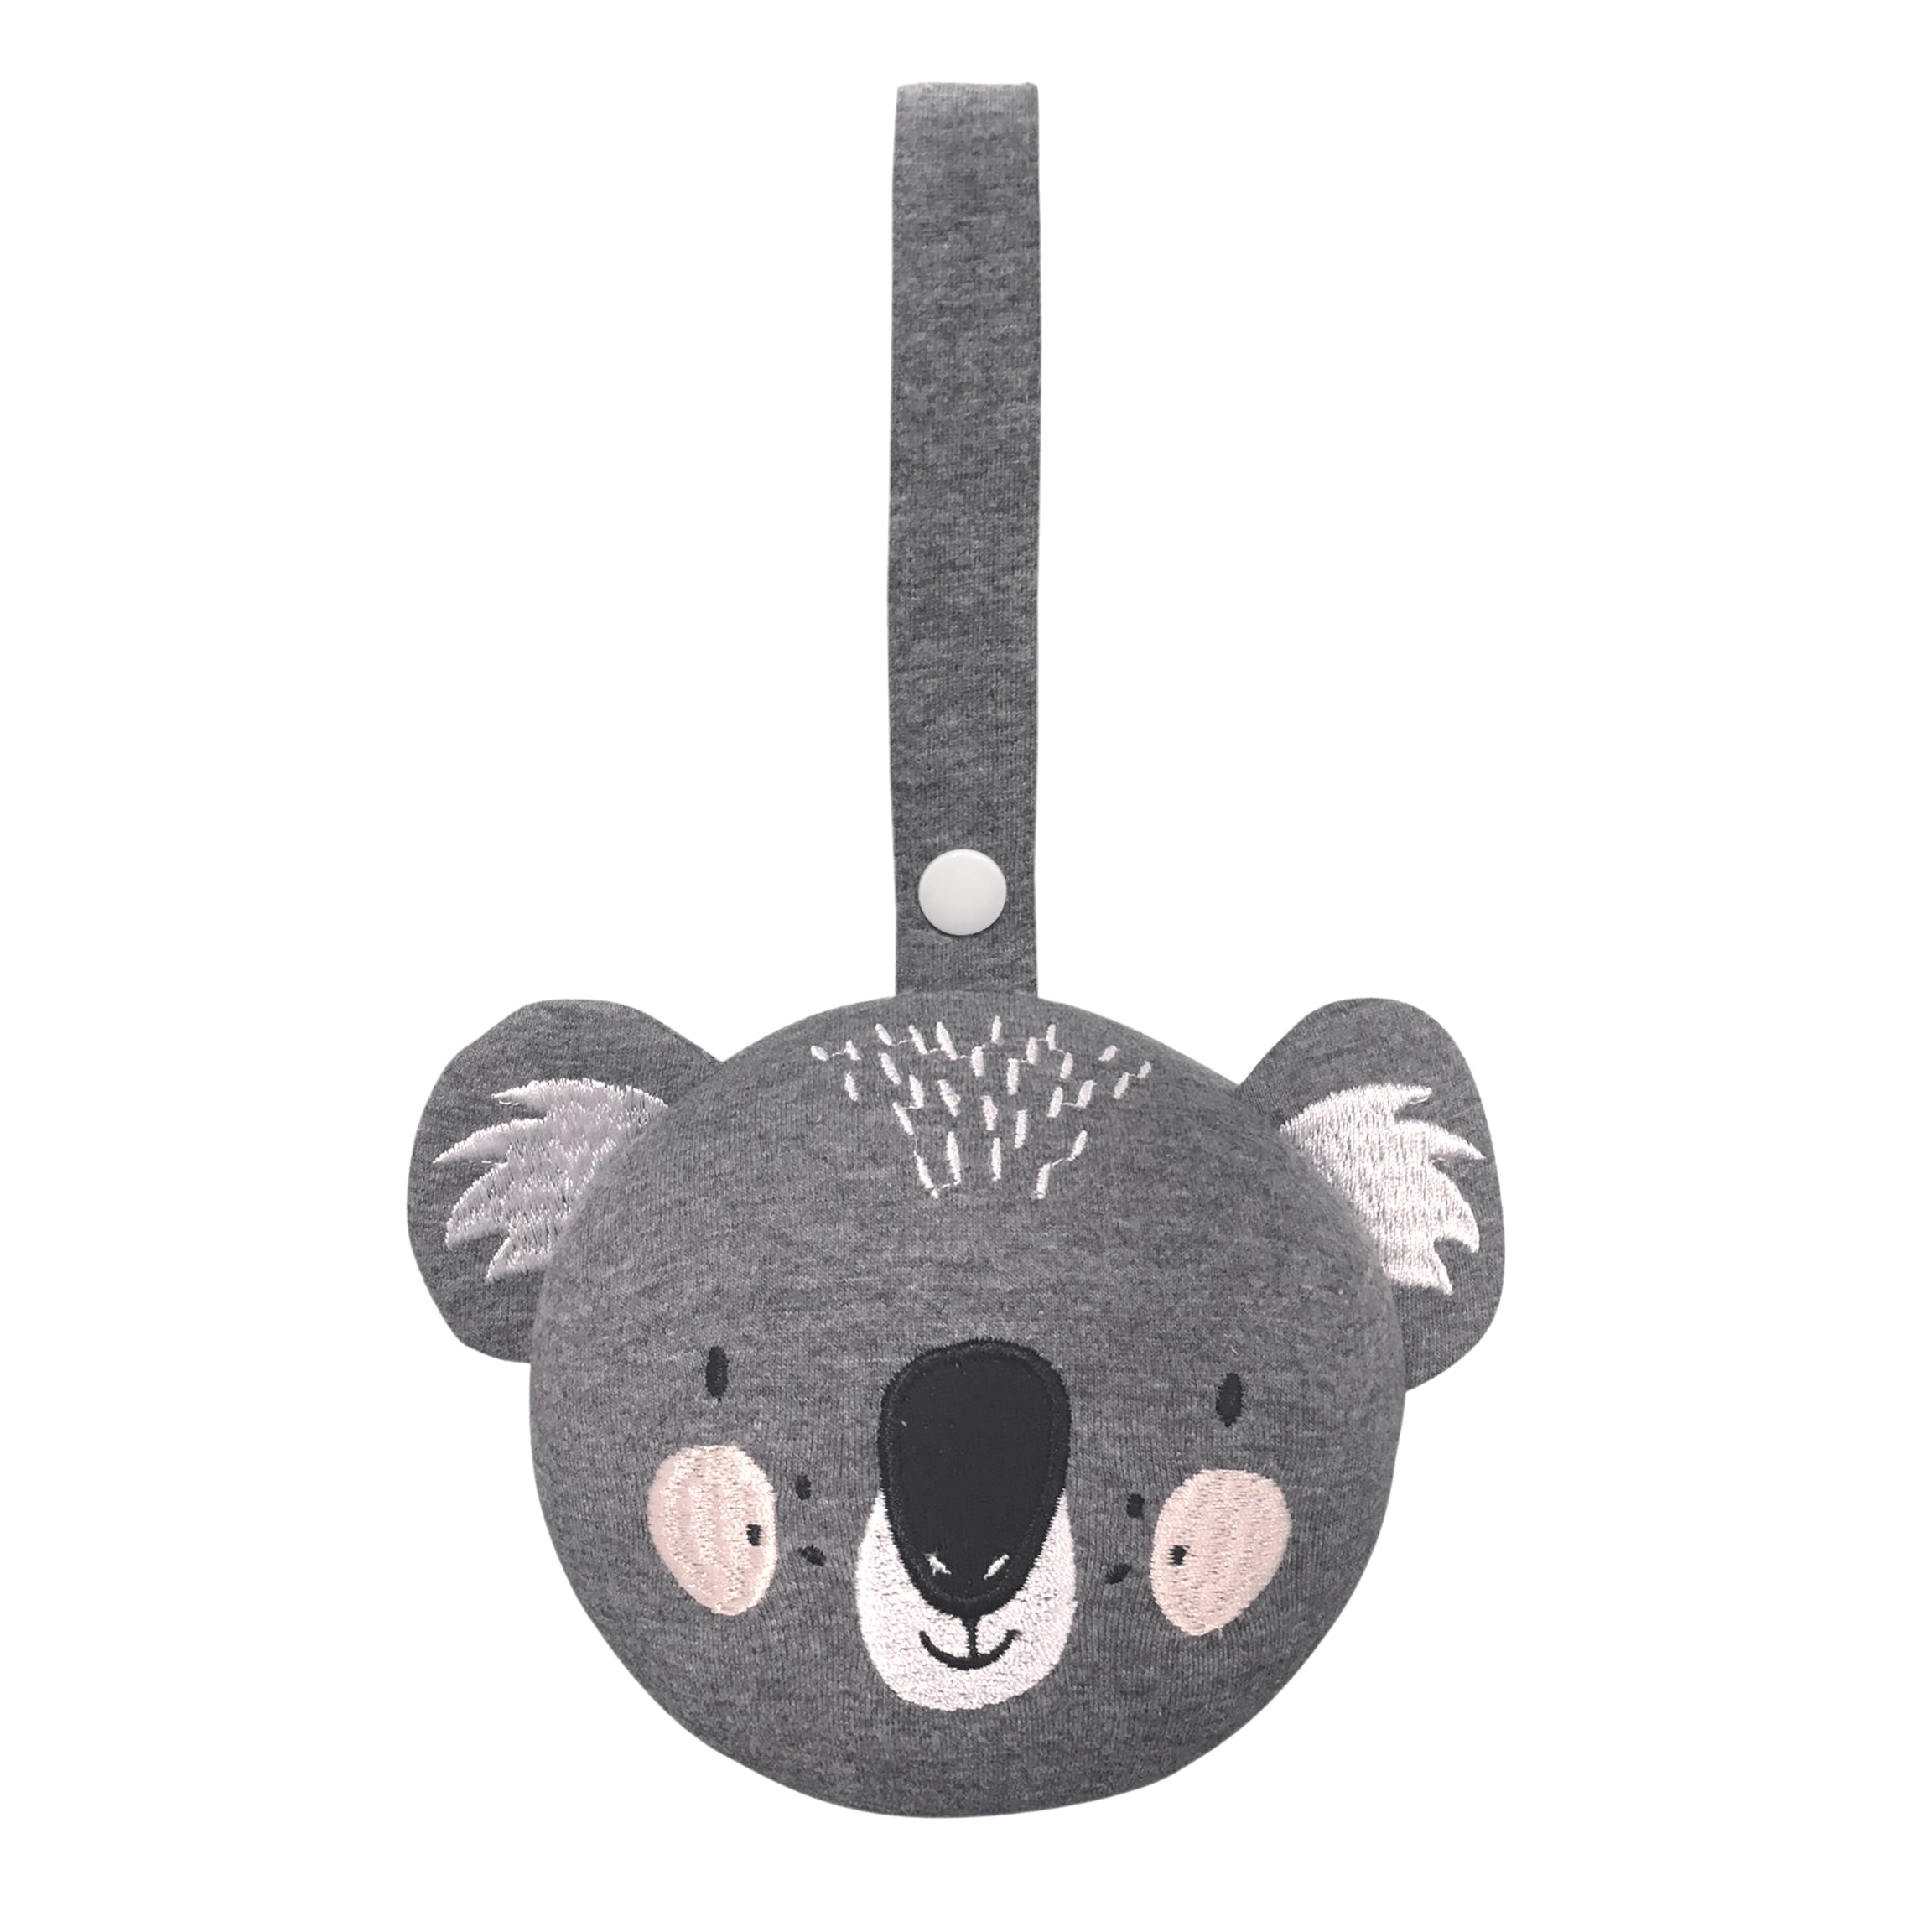 Mister Fly - Pram Rattle Ball - Koala